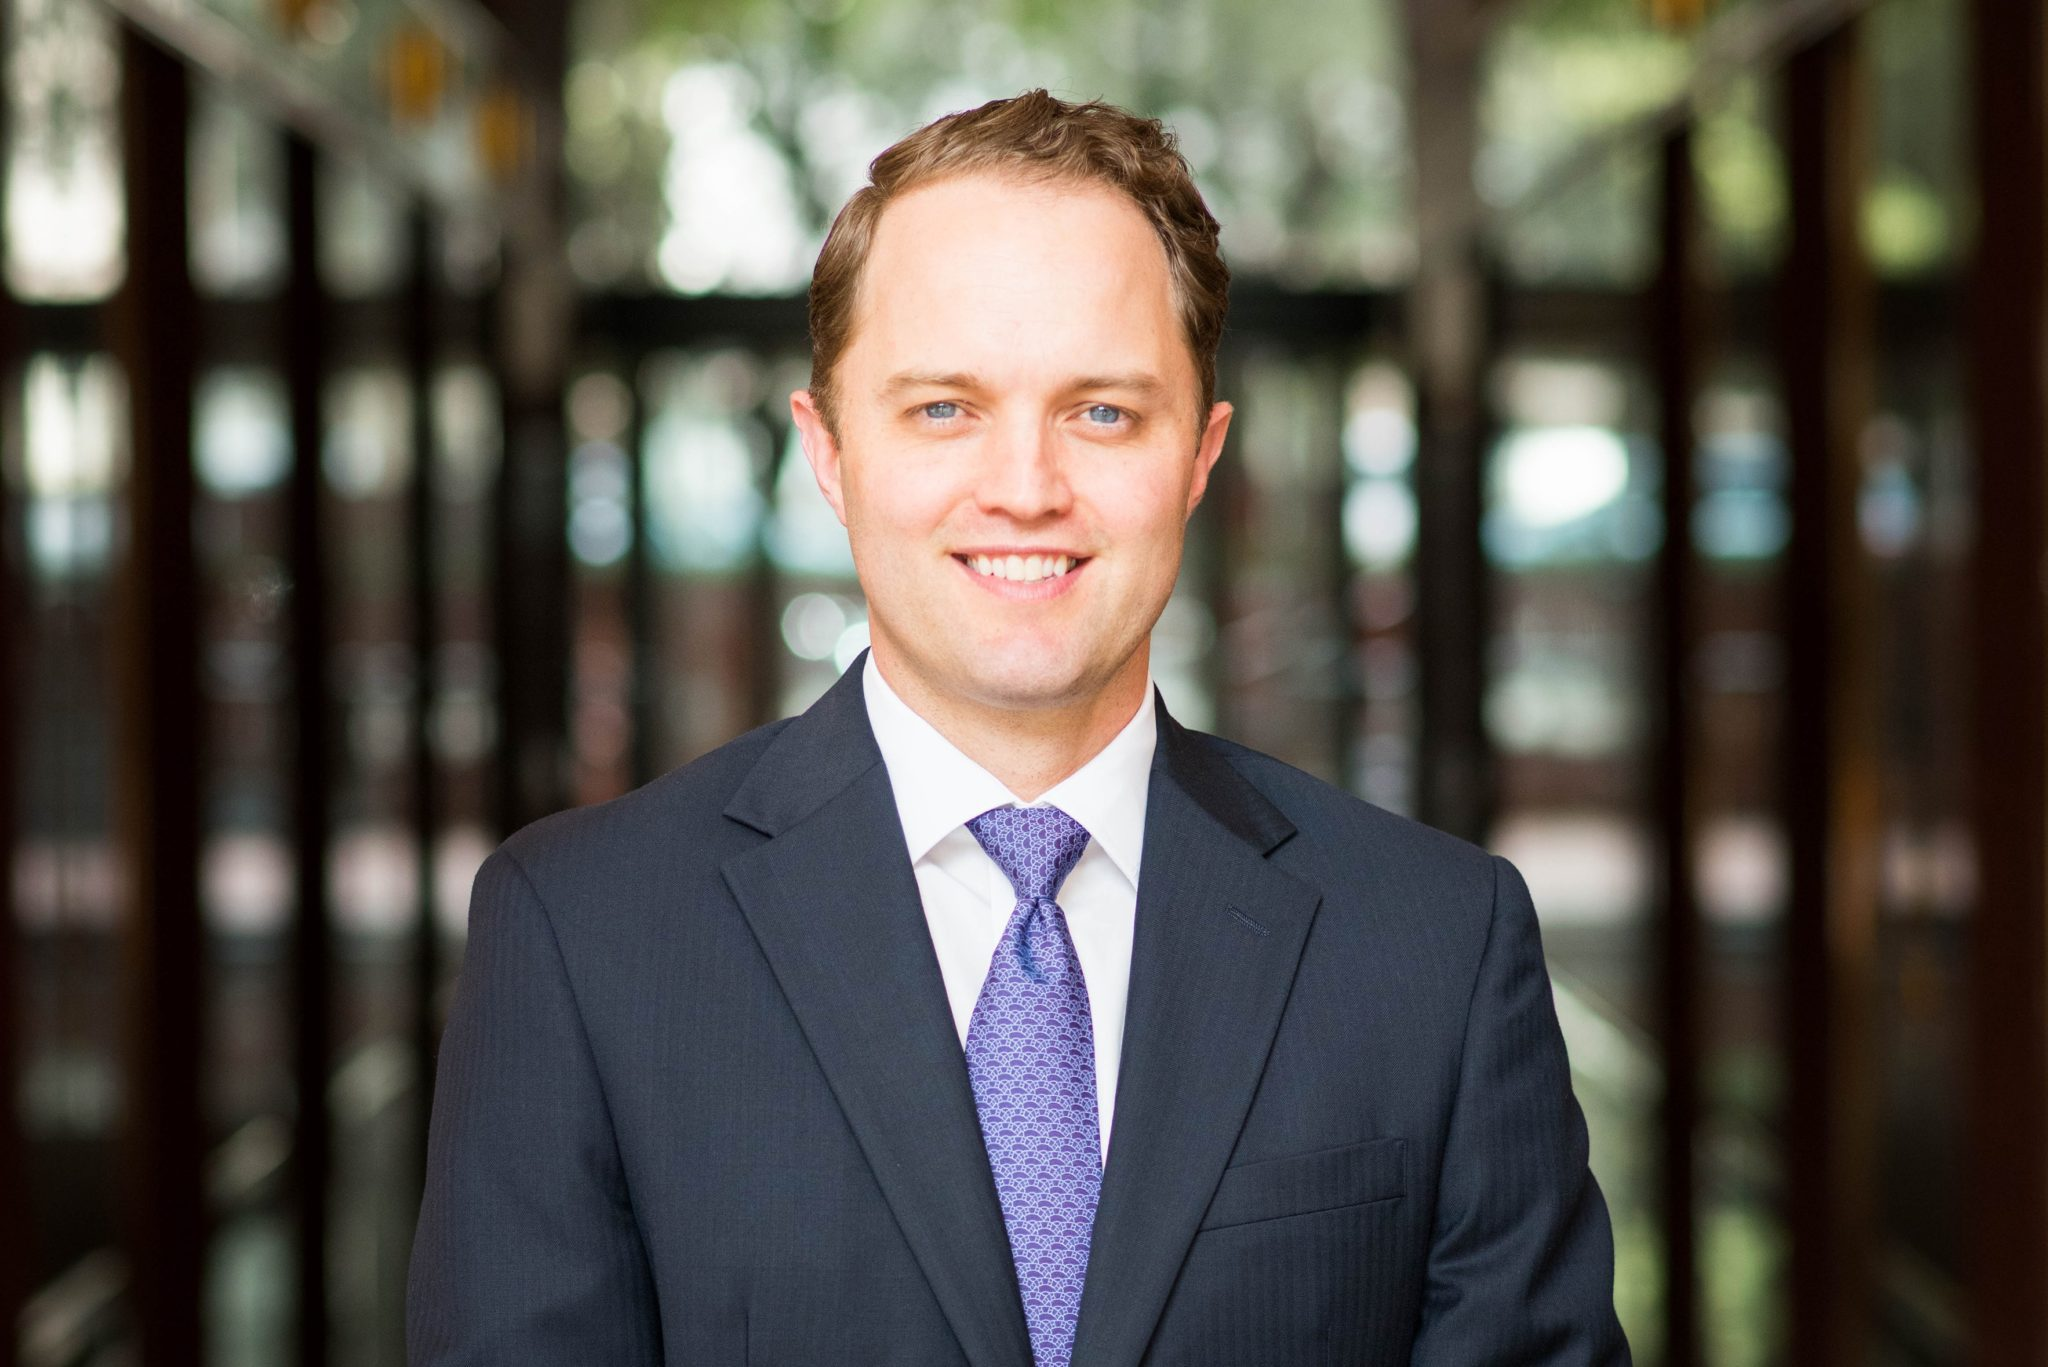 Stephen Cravens, Executive Director, Young Professionals in Energy.